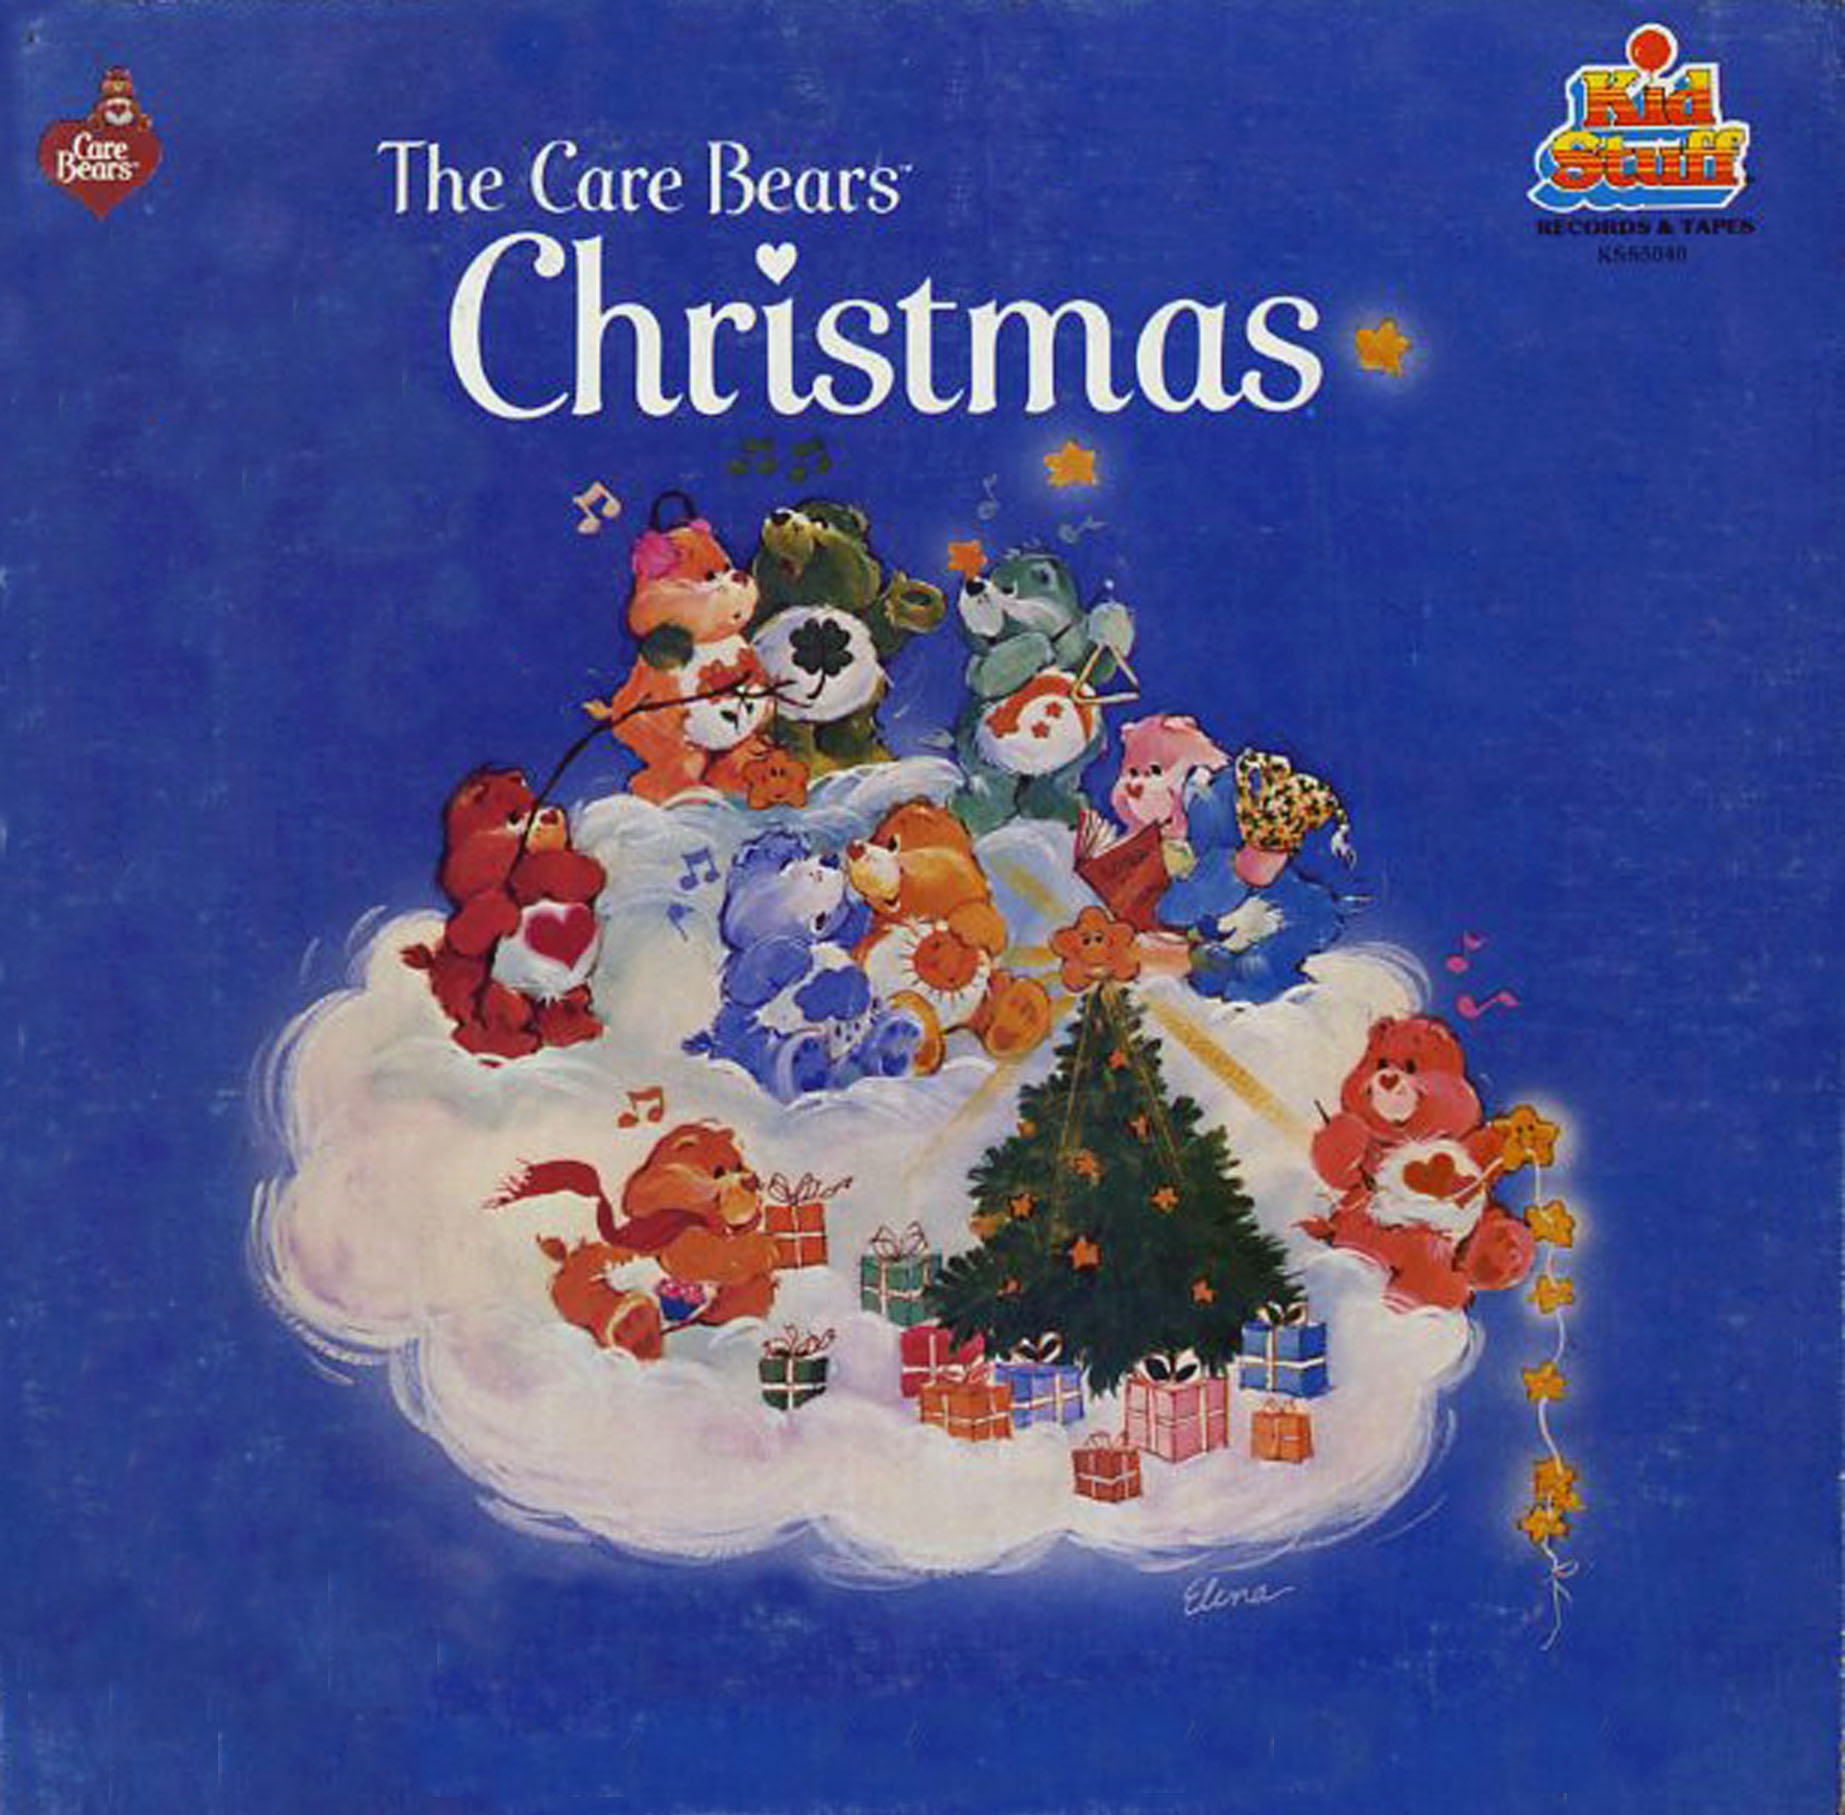 Care Bears Christmas Kid Stuff Records KSS5040 Christmas Vinyl Record LP Albums On CD And MP3